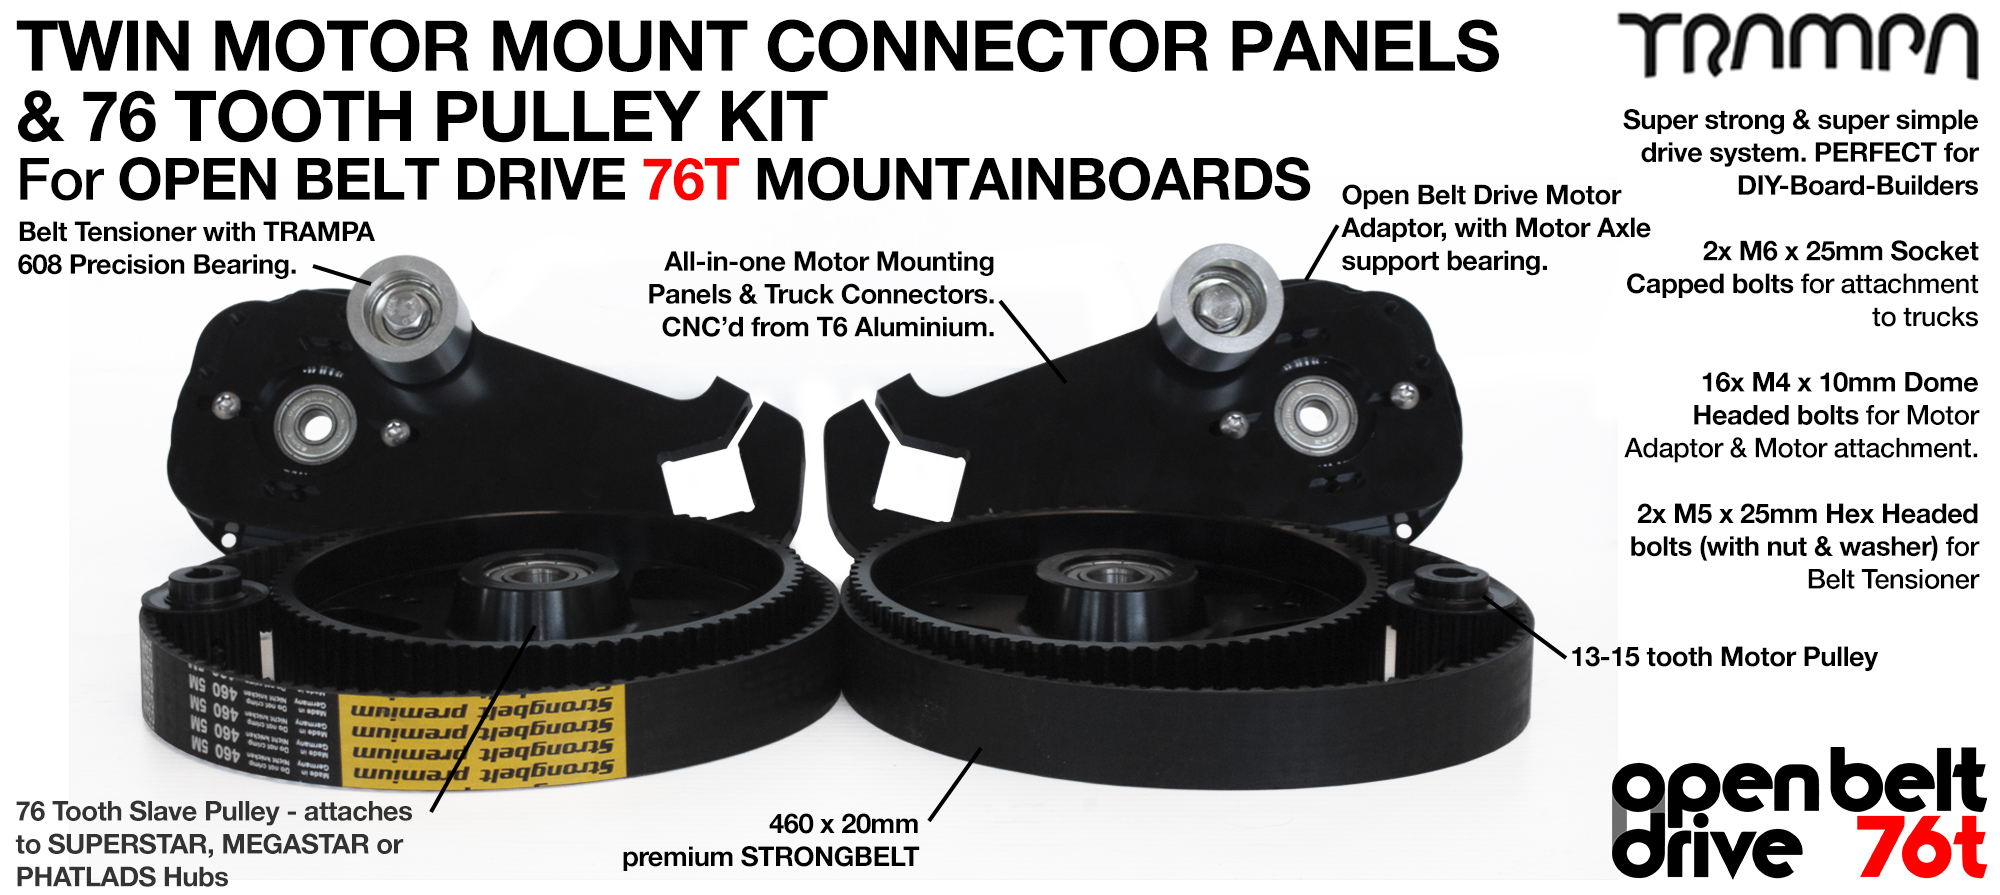 76T OBD Motor Mount & 76 tooth Pulley for 9 inch Wheel - TWIN